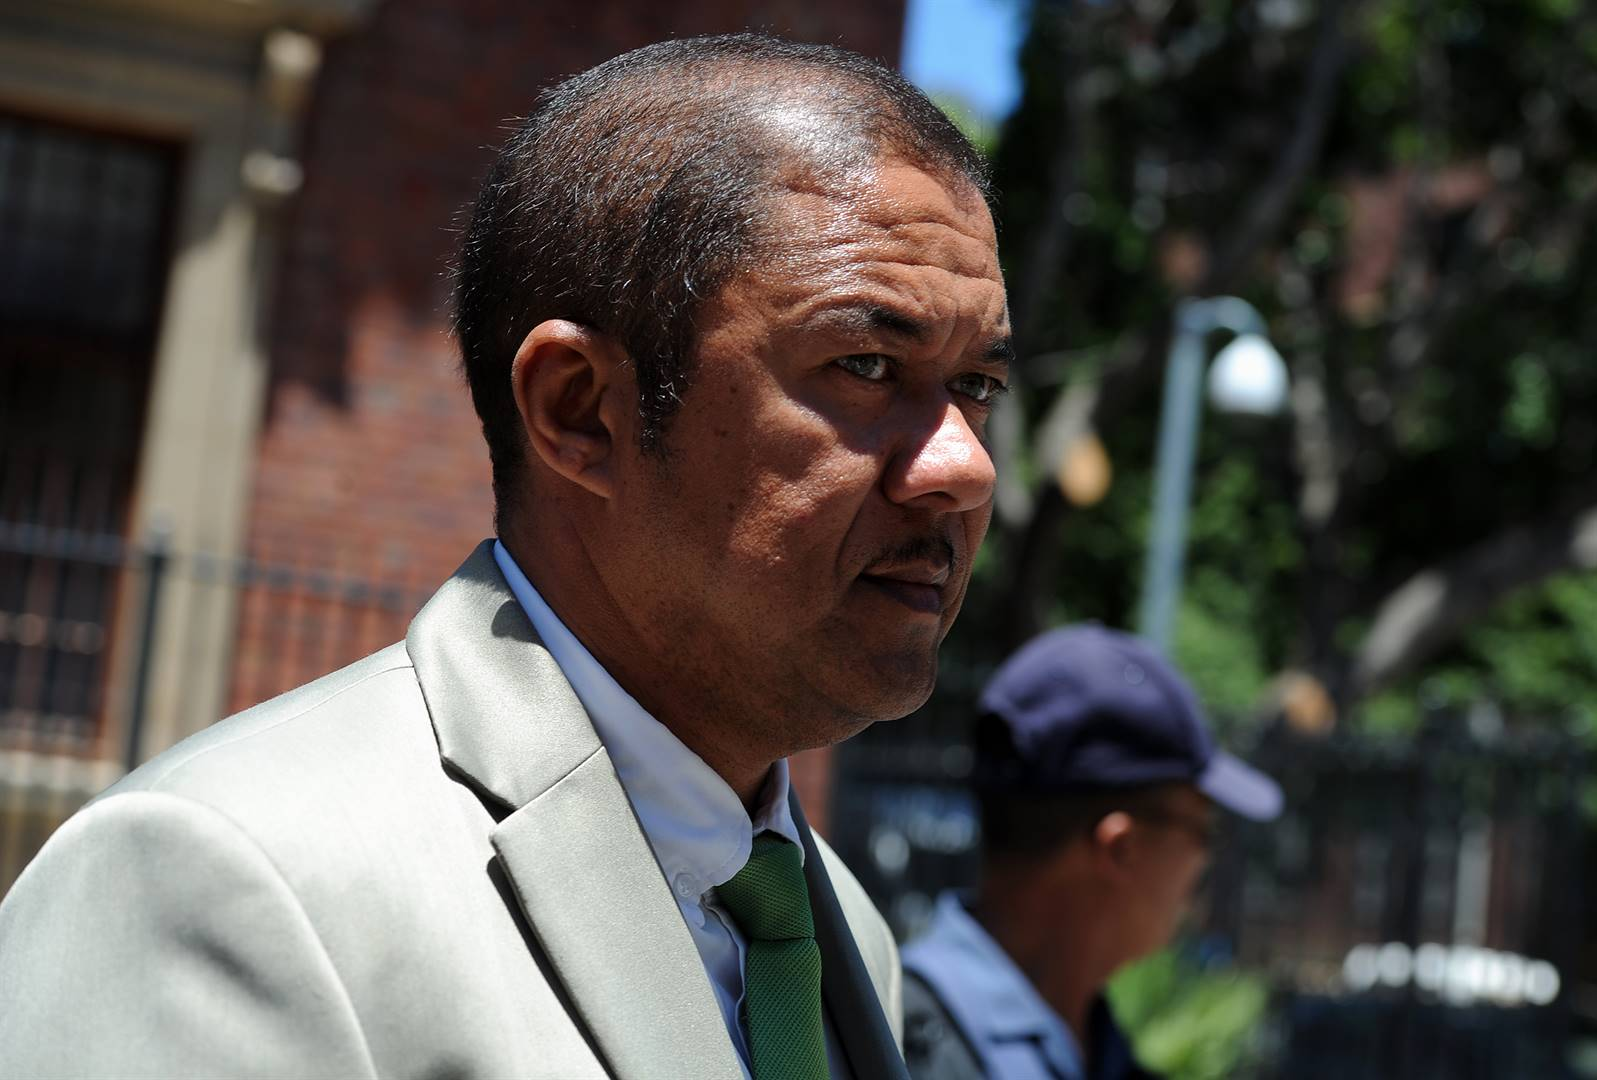 Anti-Gang Unit senior detective, Lieutenant Colonel Charl Kinnear, was gunned down in front of his Bishop Lavis home on Friday 18 September.